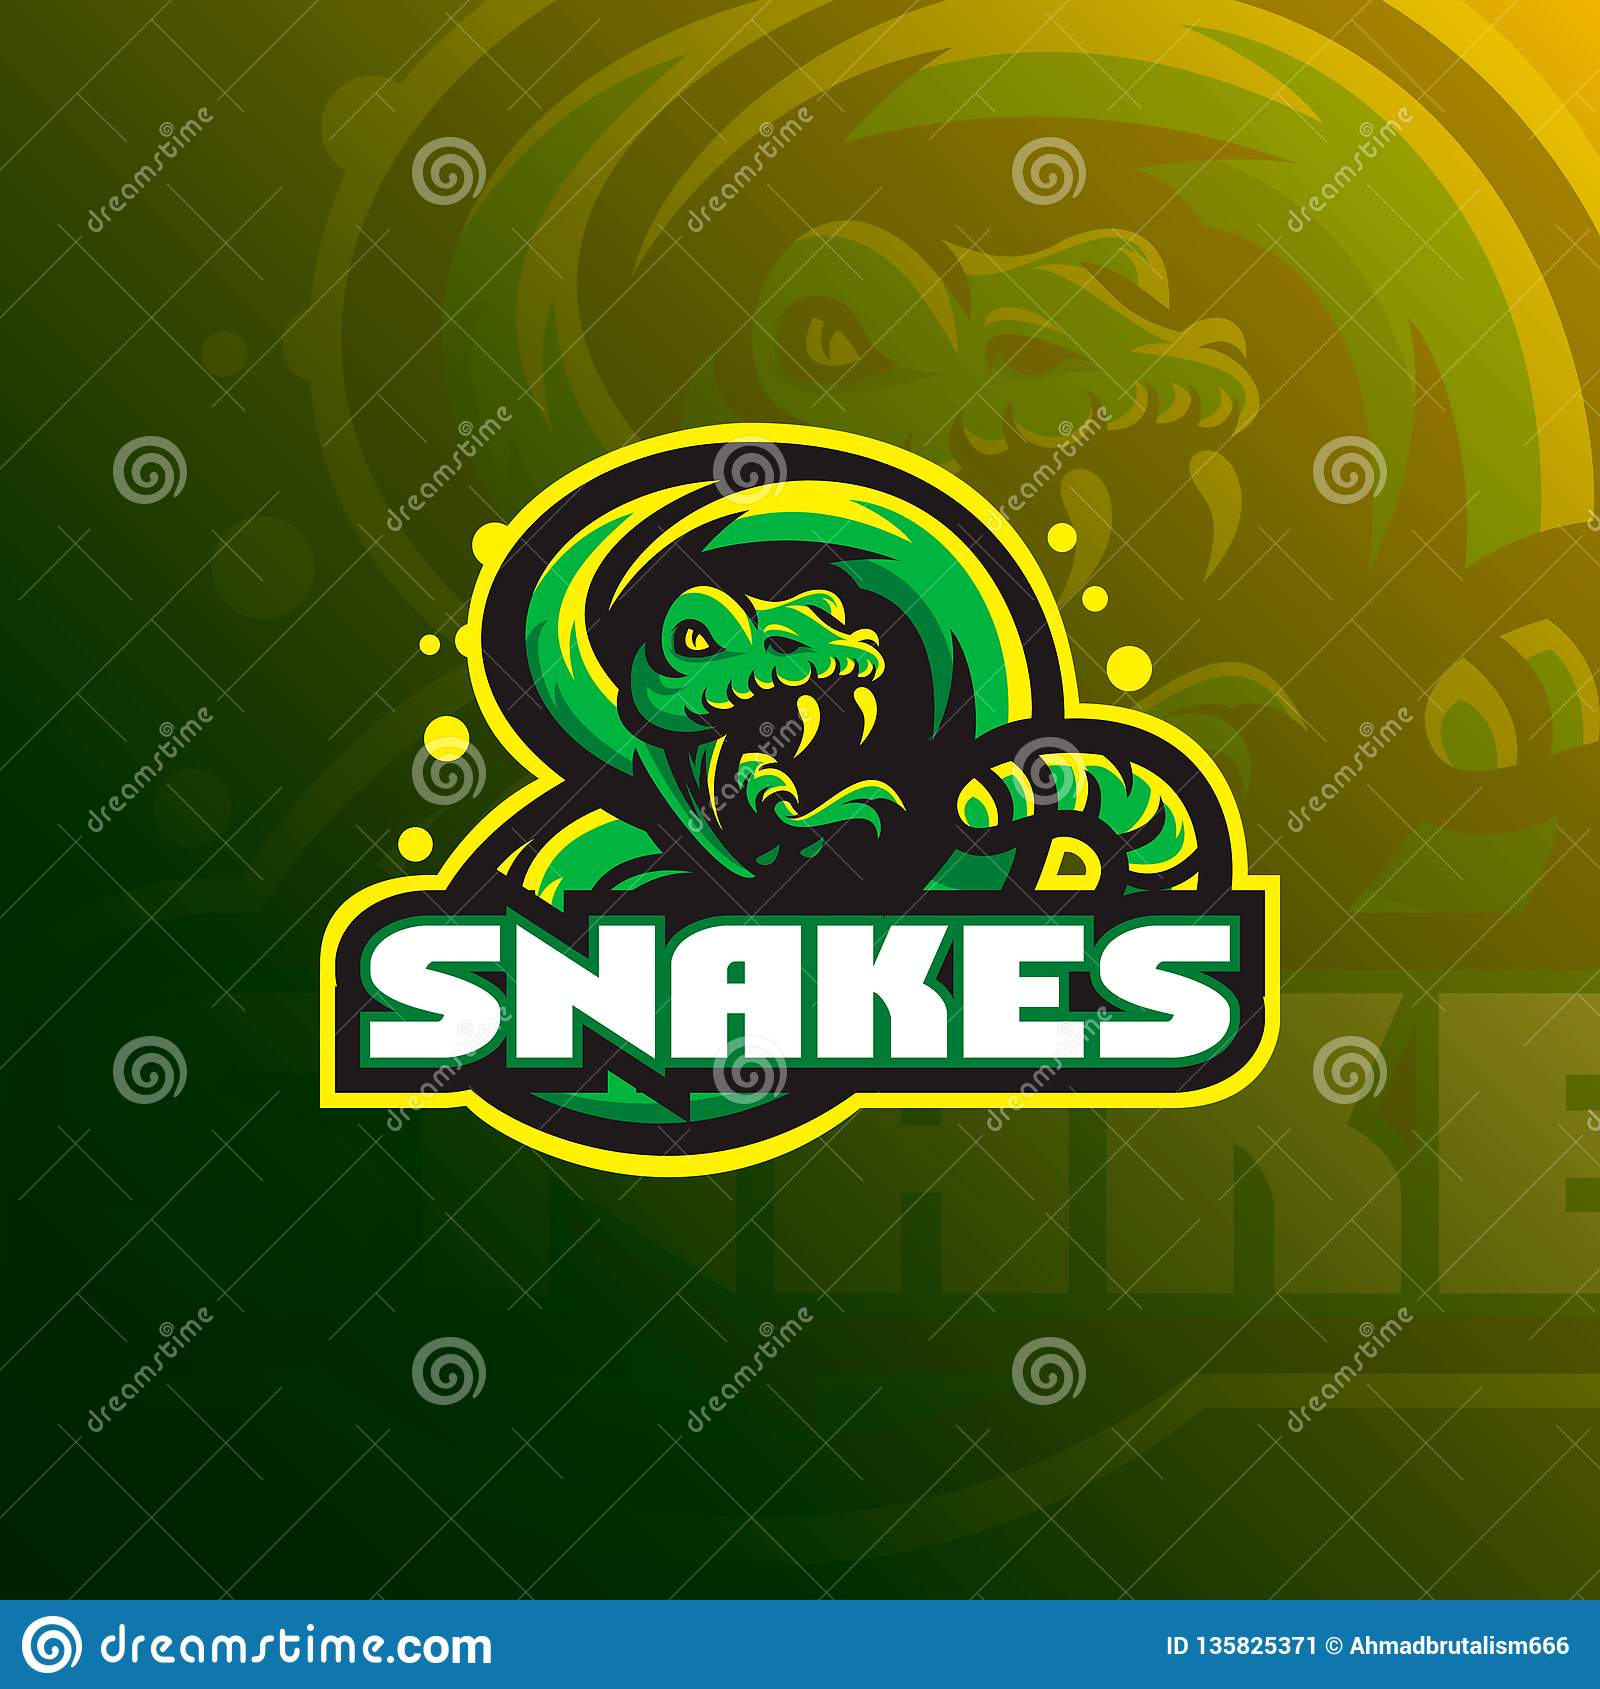 Snake mascot logo design vector with a modern color concept and badge emblem style for sports team. Snake illustration tshirt prin